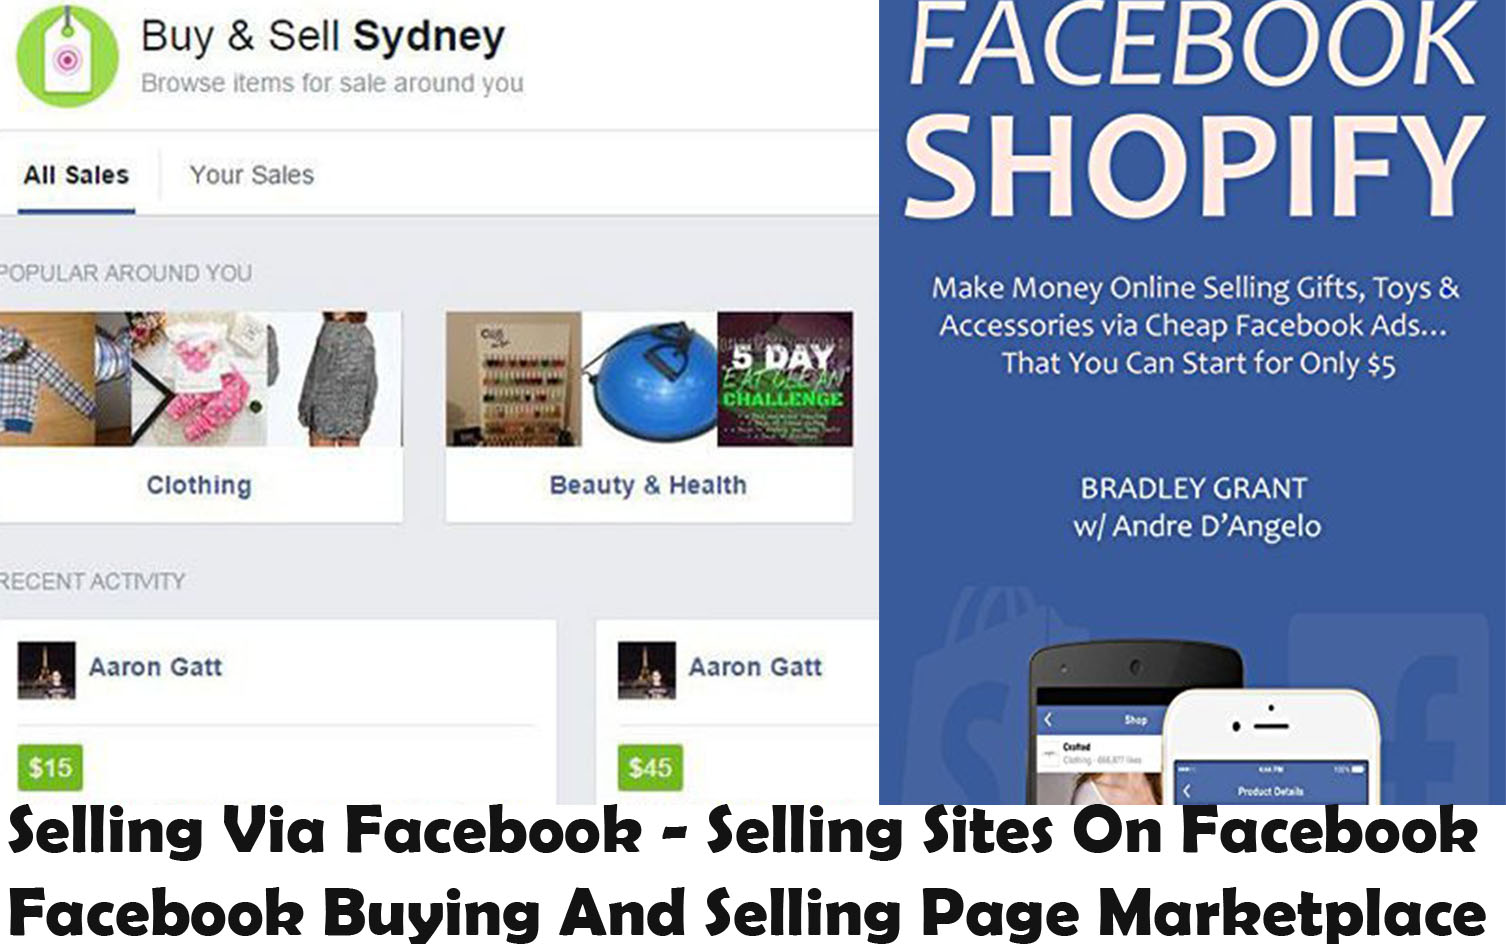 Selling Via Facebook - Selling Sites On Facebook Near Me - Facebook Buying And Selling Page Marketplace